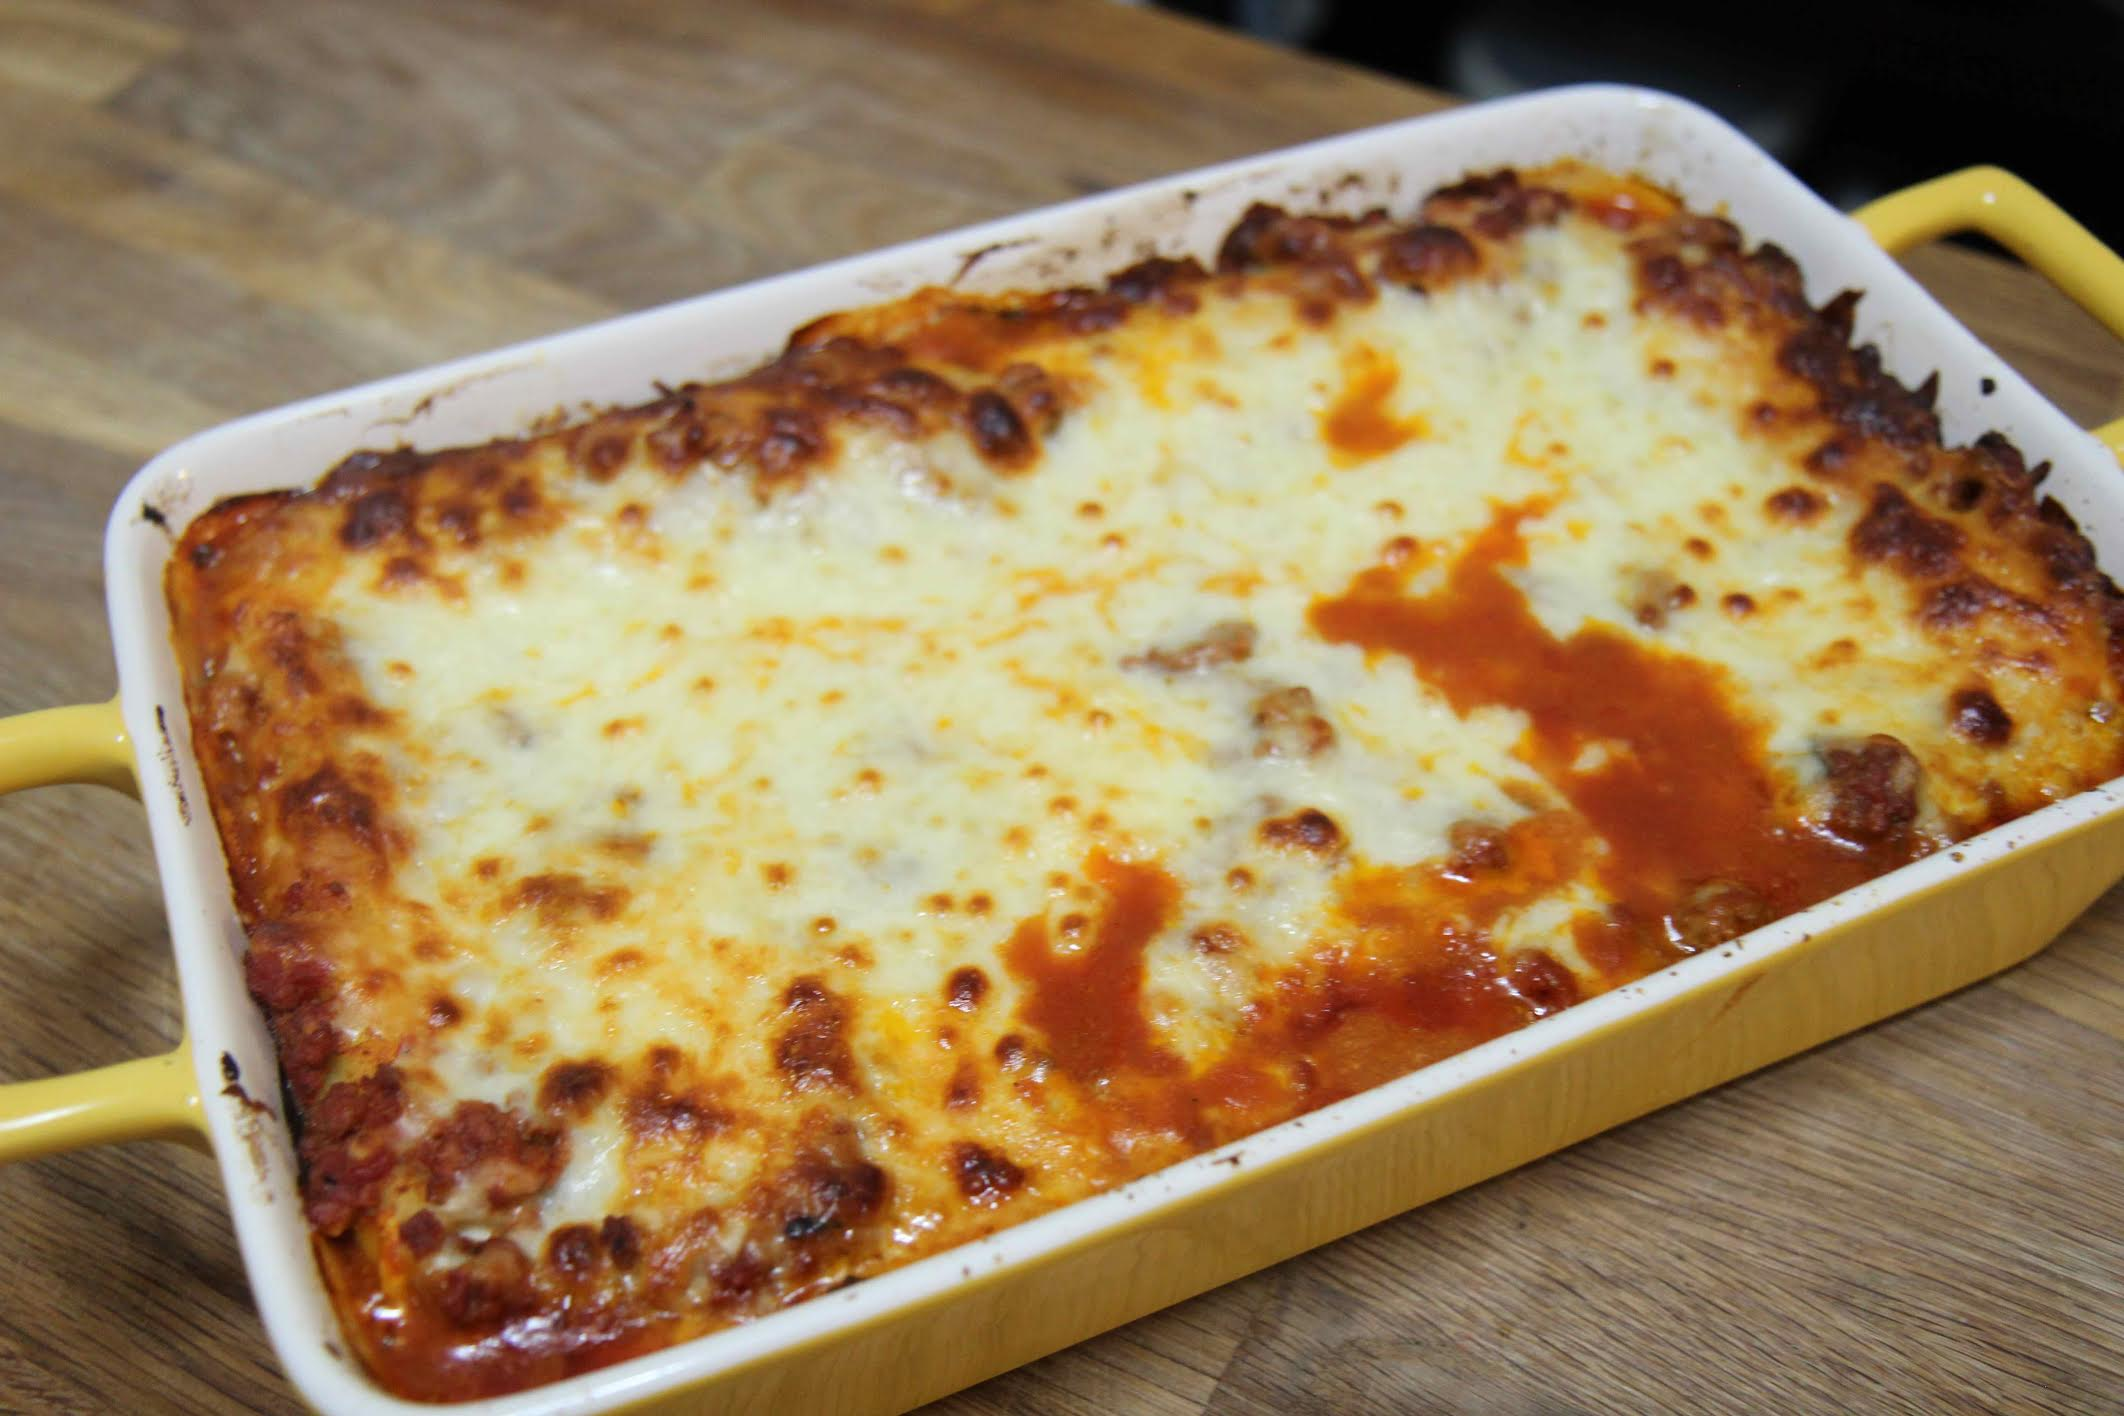 Delicious homemade Manicotti with meat sauce and cheese